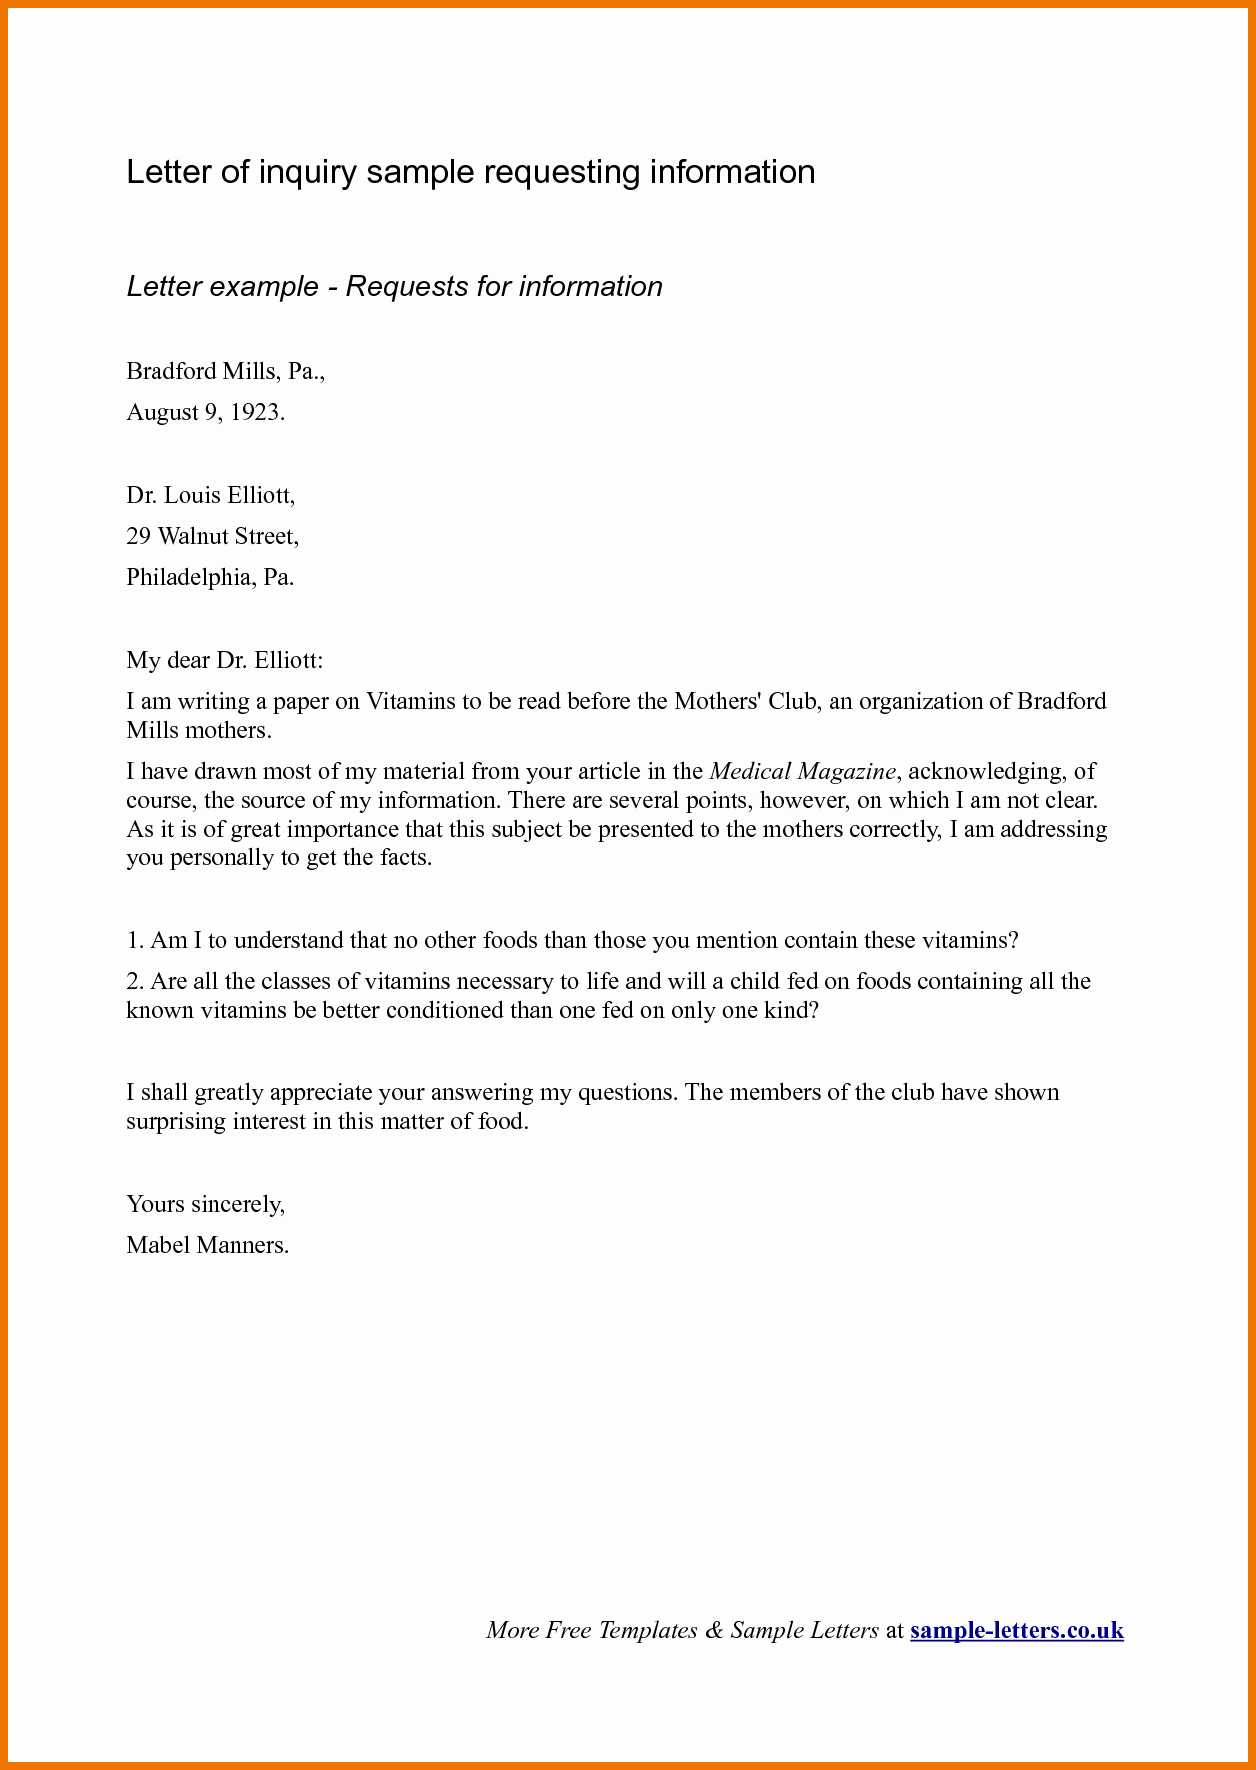 Letter Of Inquiry Template New formal Inquiry Letter Samples for Your Inspirations Vatansun